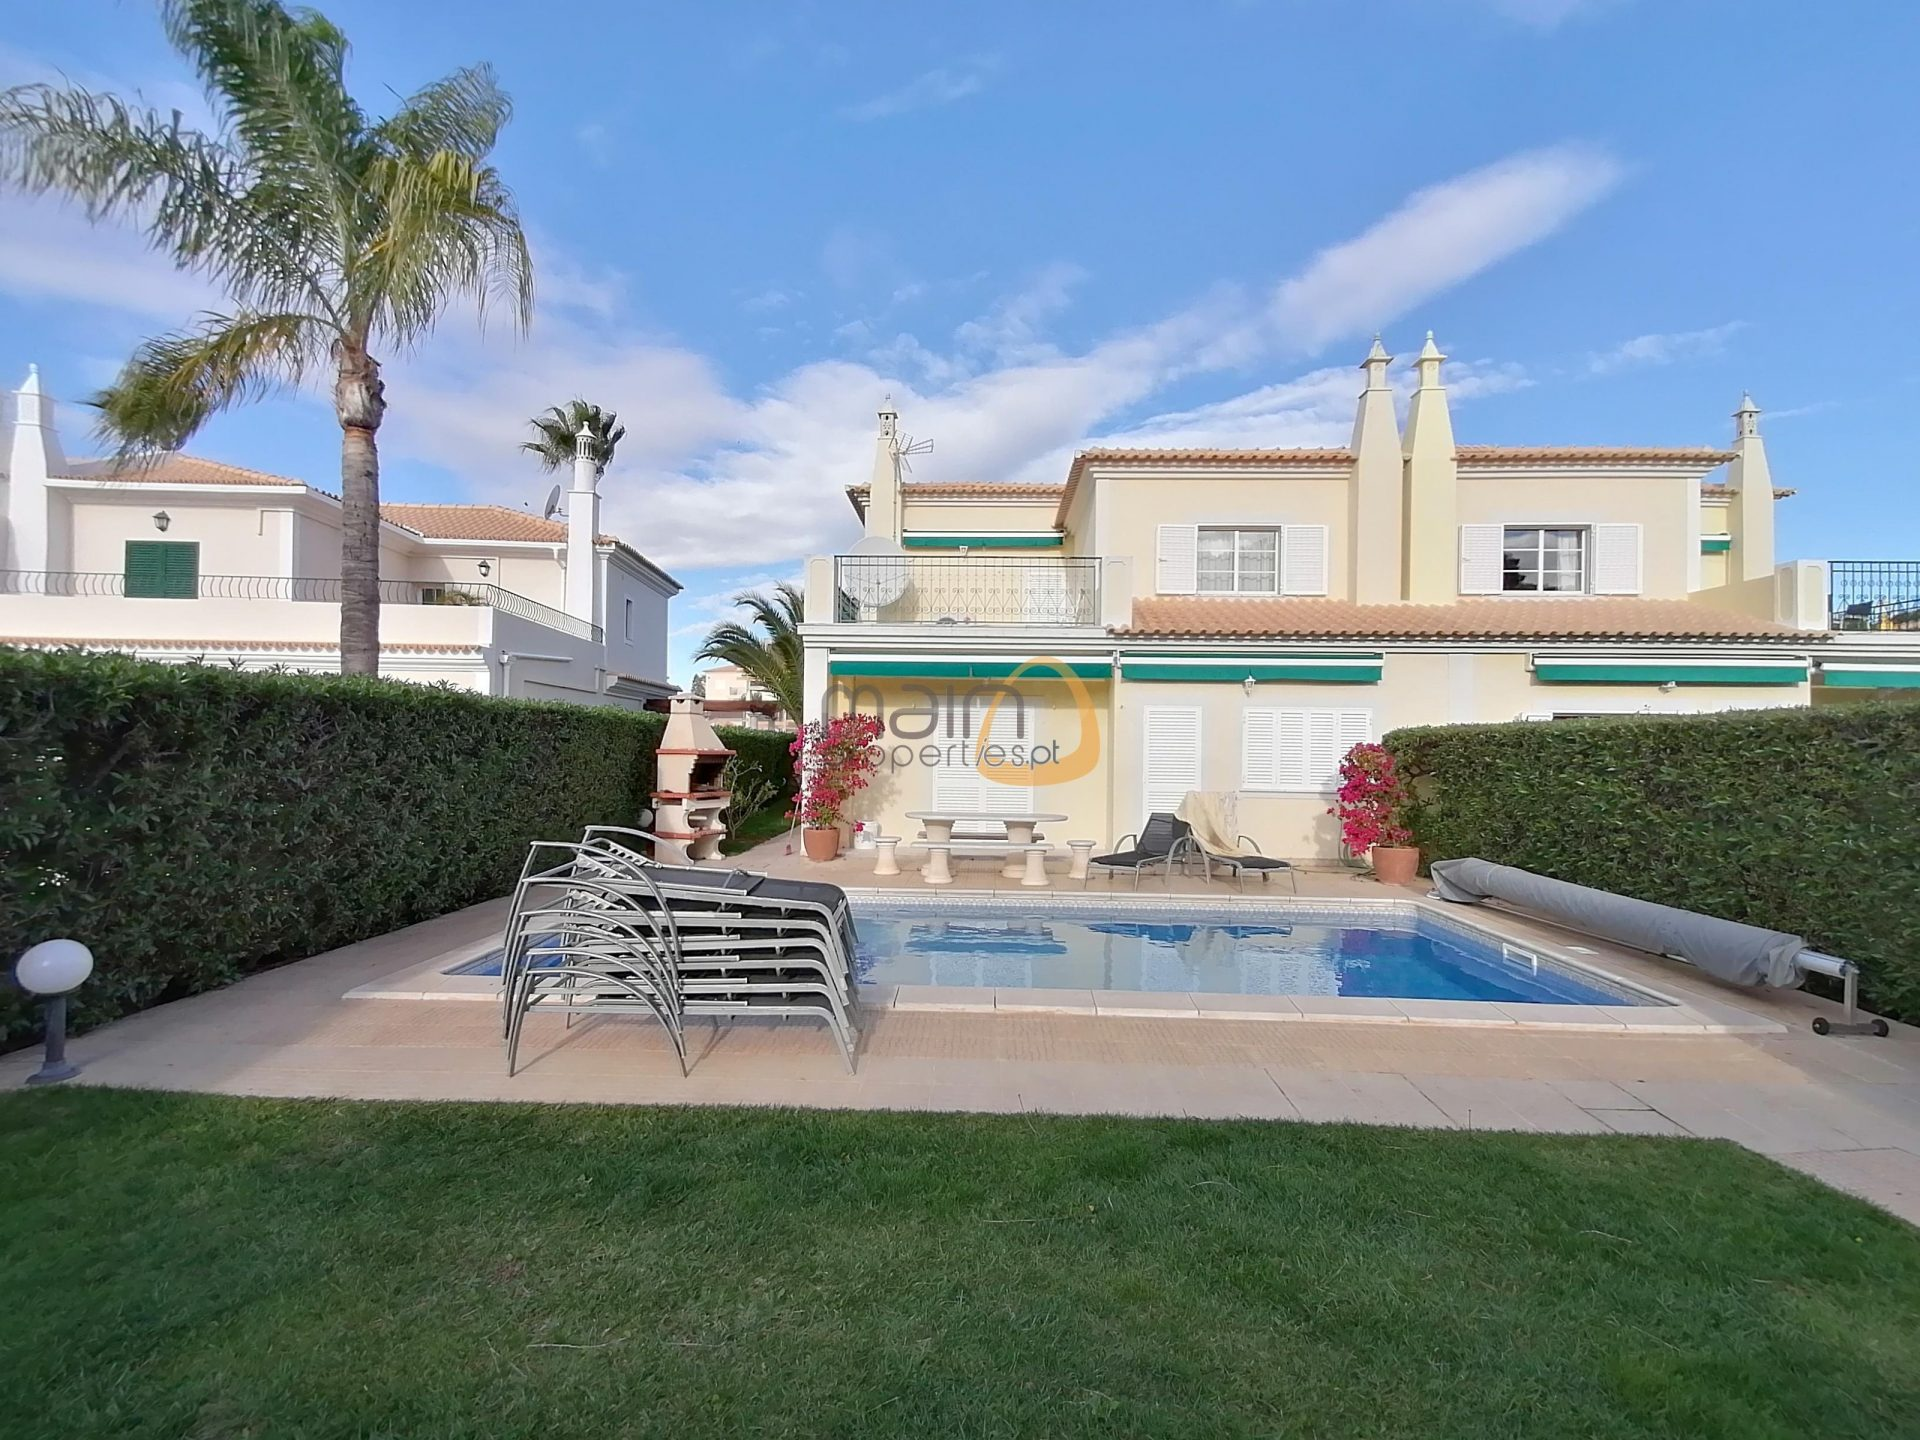 4 bedroom linked villa with private pool in Quinta Jacintina